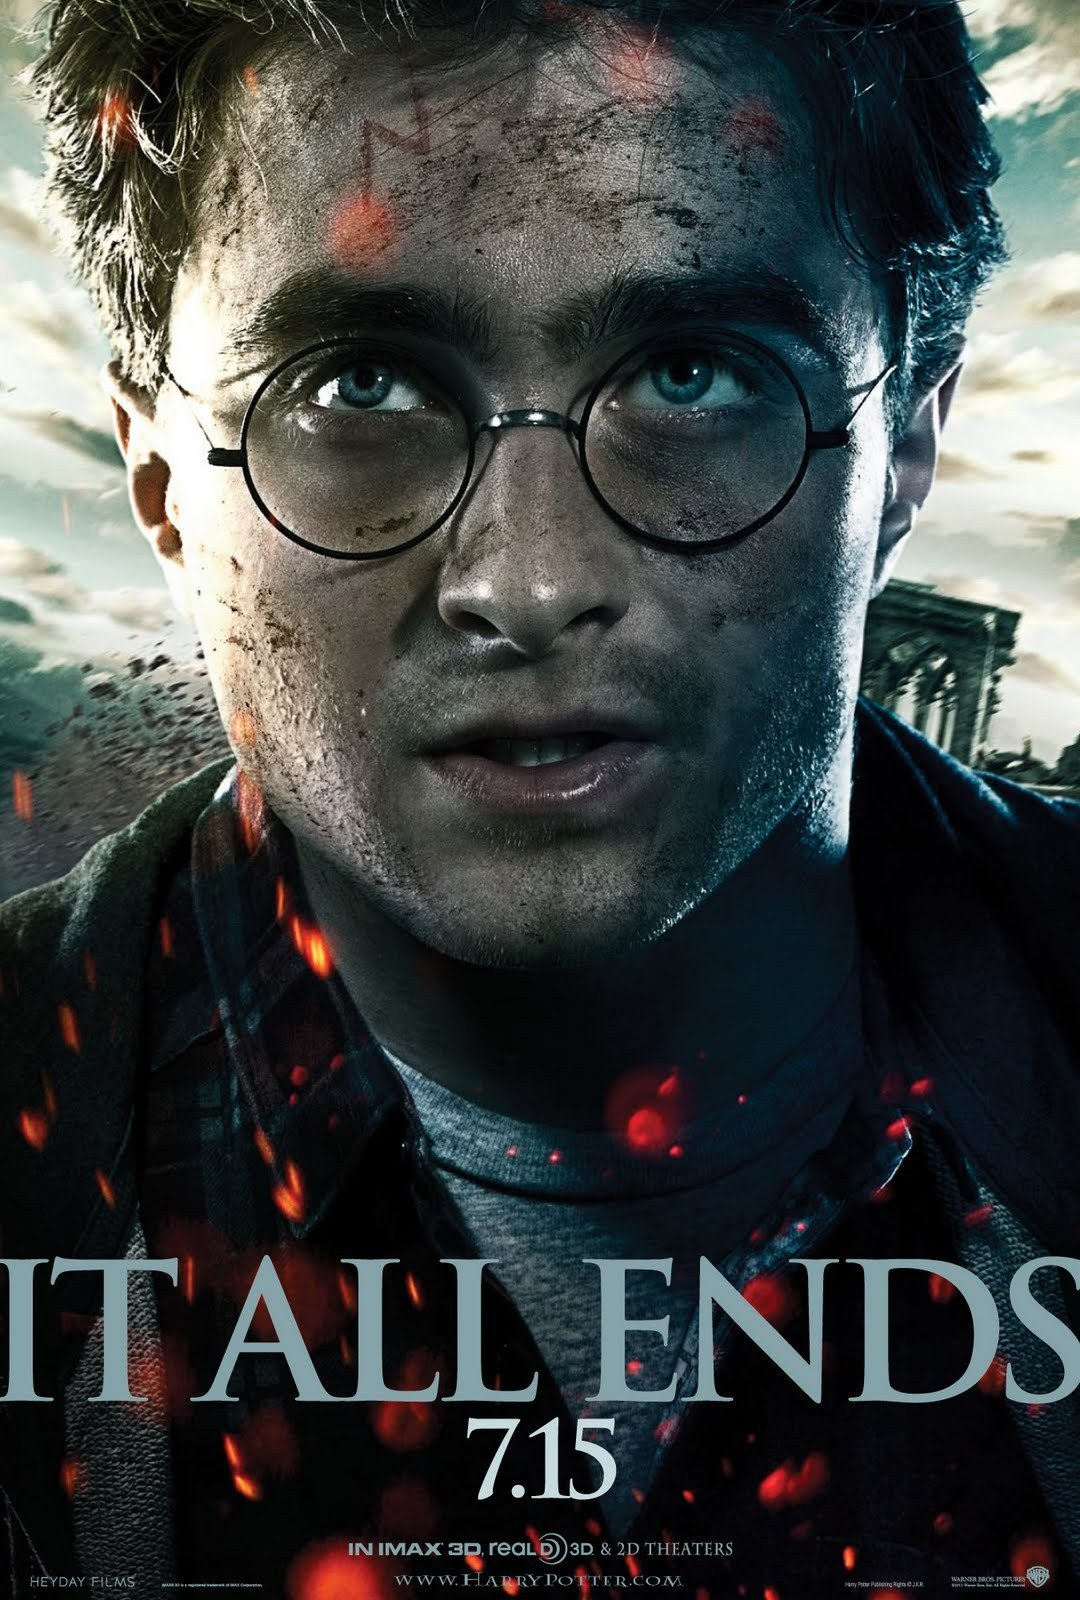 harry james potter images harry -it all ends hd wallpaper and